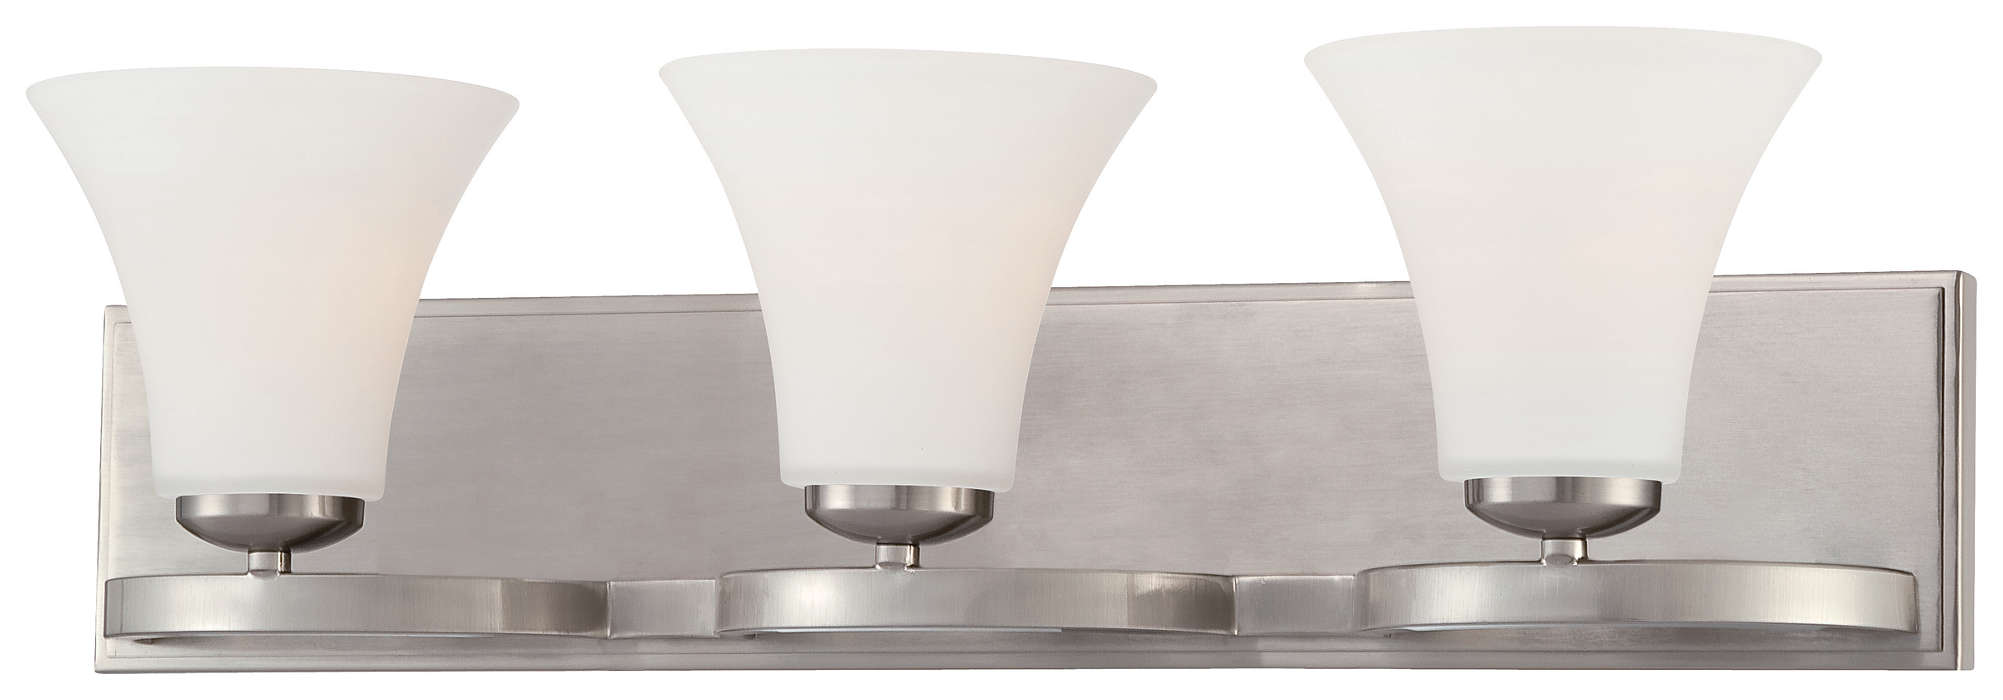 Bryce 3-light Bath in Satin Nickel finish